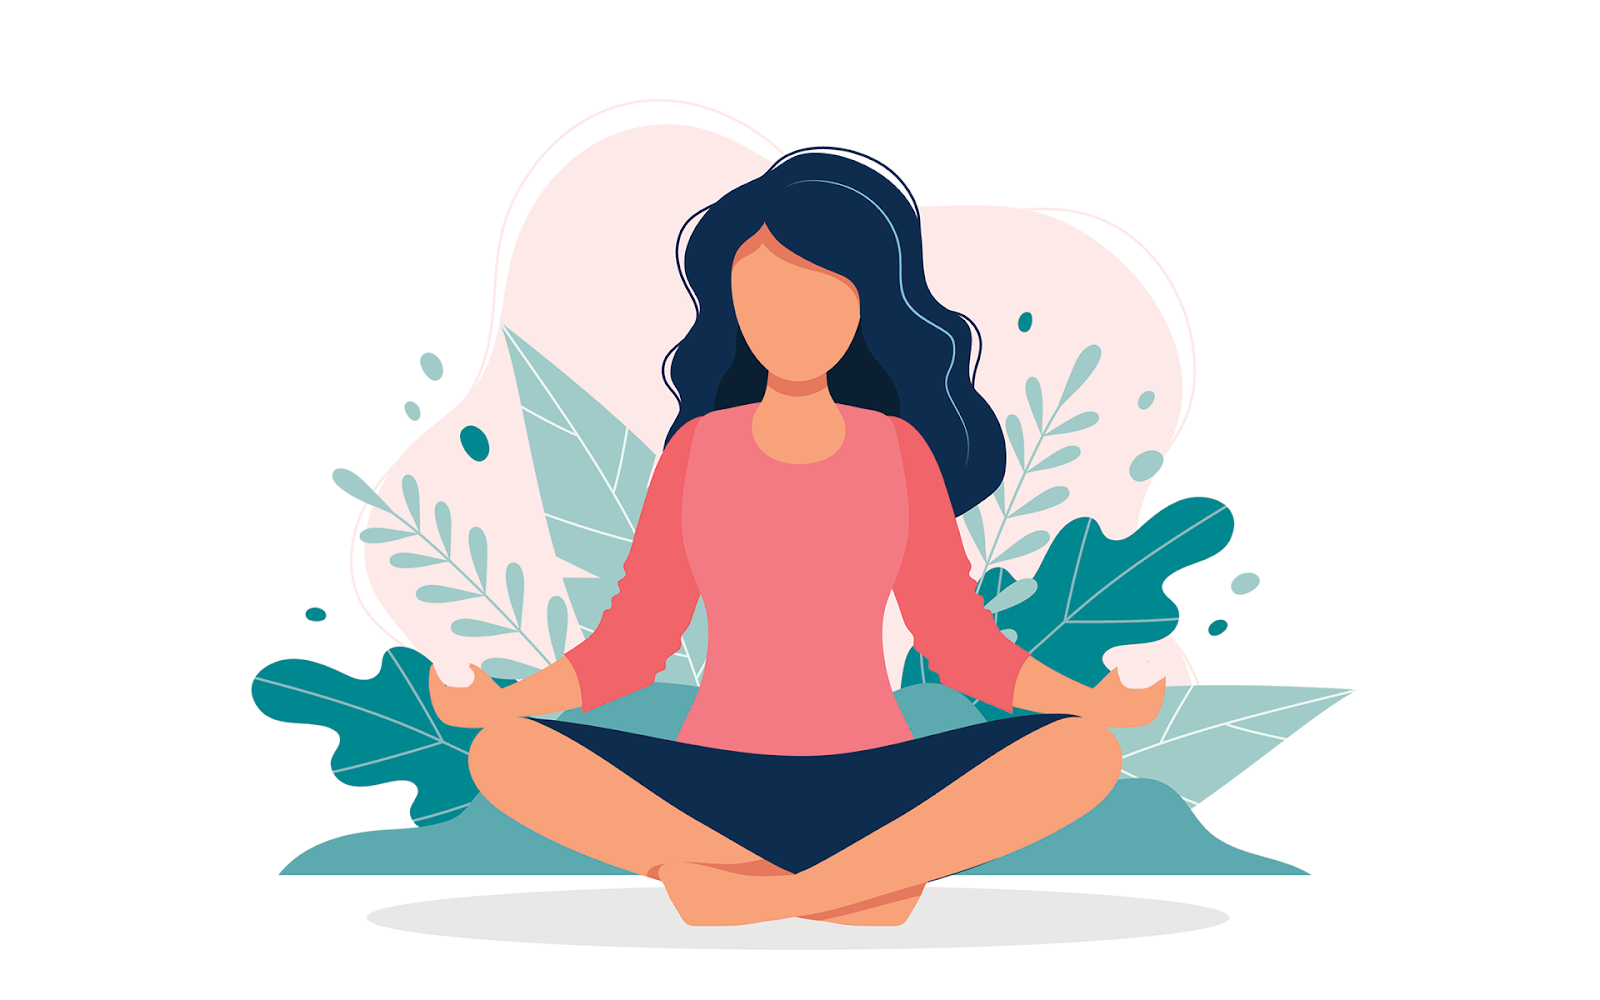 Start your day with a meditation and positive music - Kaliuda Gallery's Tips & Tricks to Kick-Start your New Year